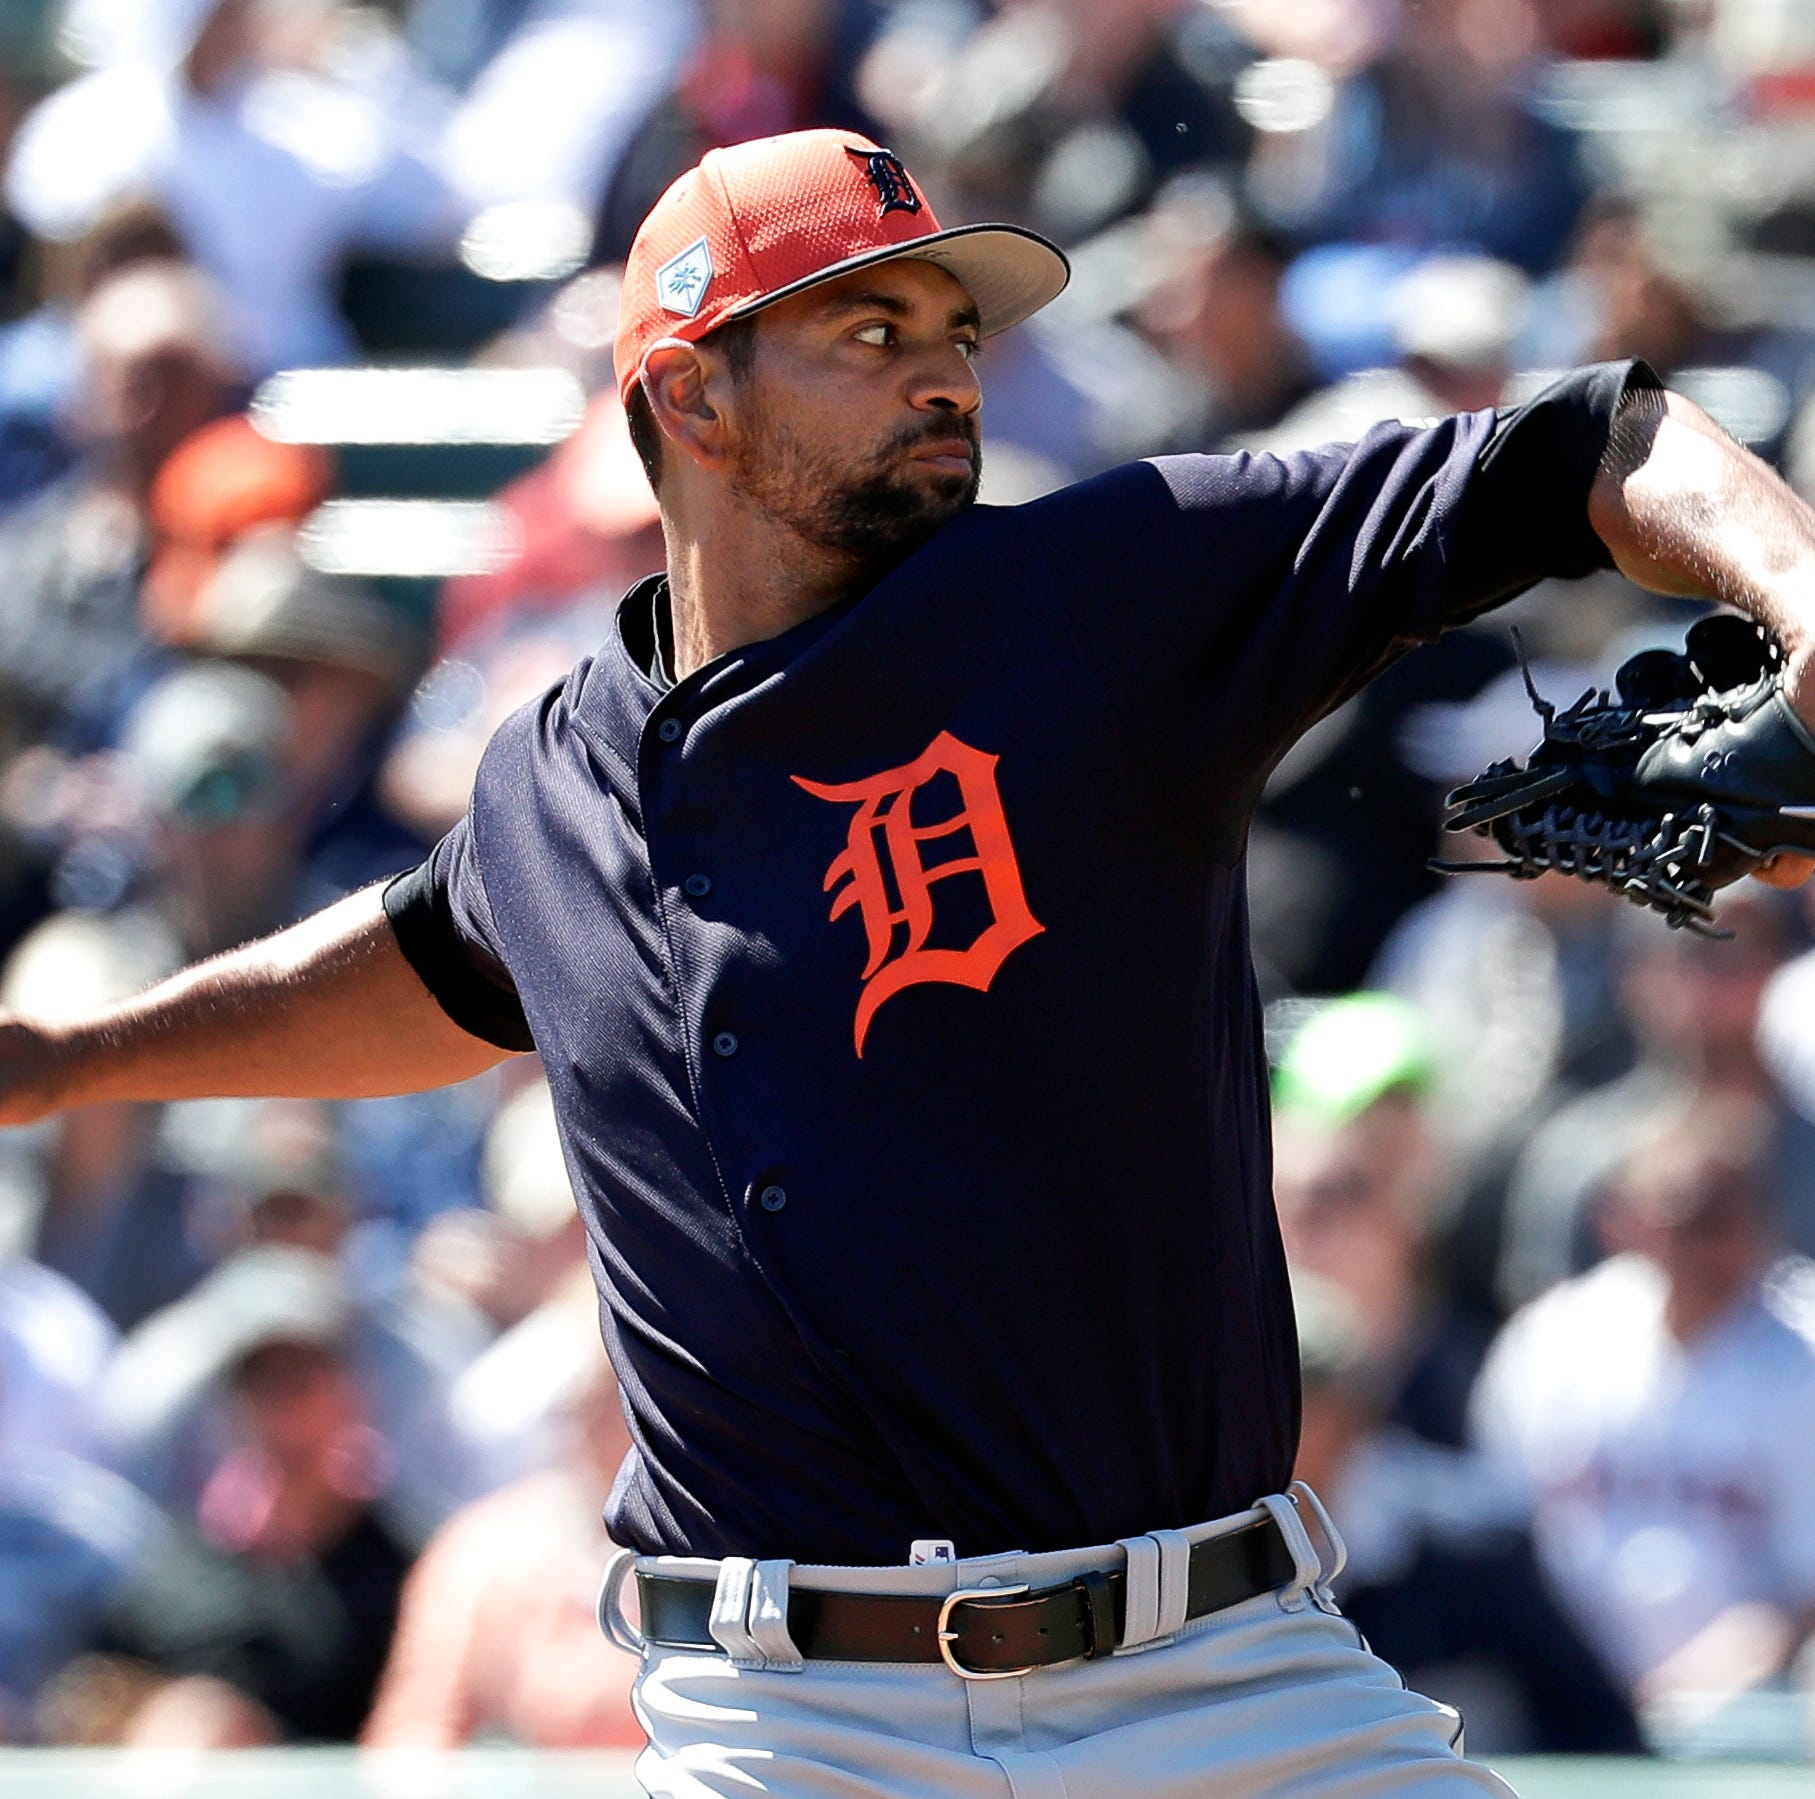 Detroit Tigers spring training observations: Tyson Ross struggles again